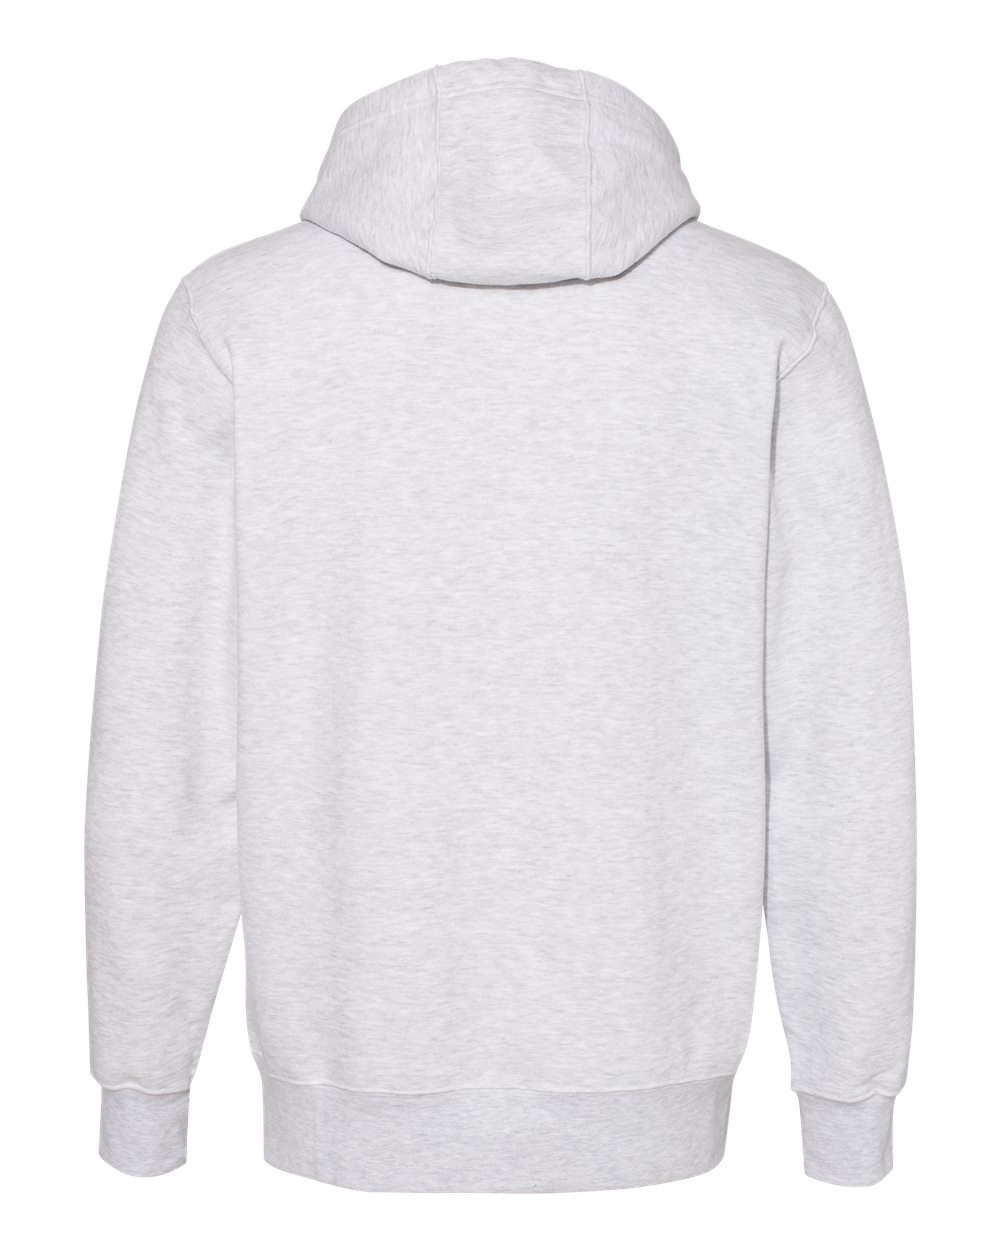 Russell-Athletic-Mens-Cotton-Rich-Fleece-Hooded-Sweatshirt-82ONSM-up-to-3XL miniature 7